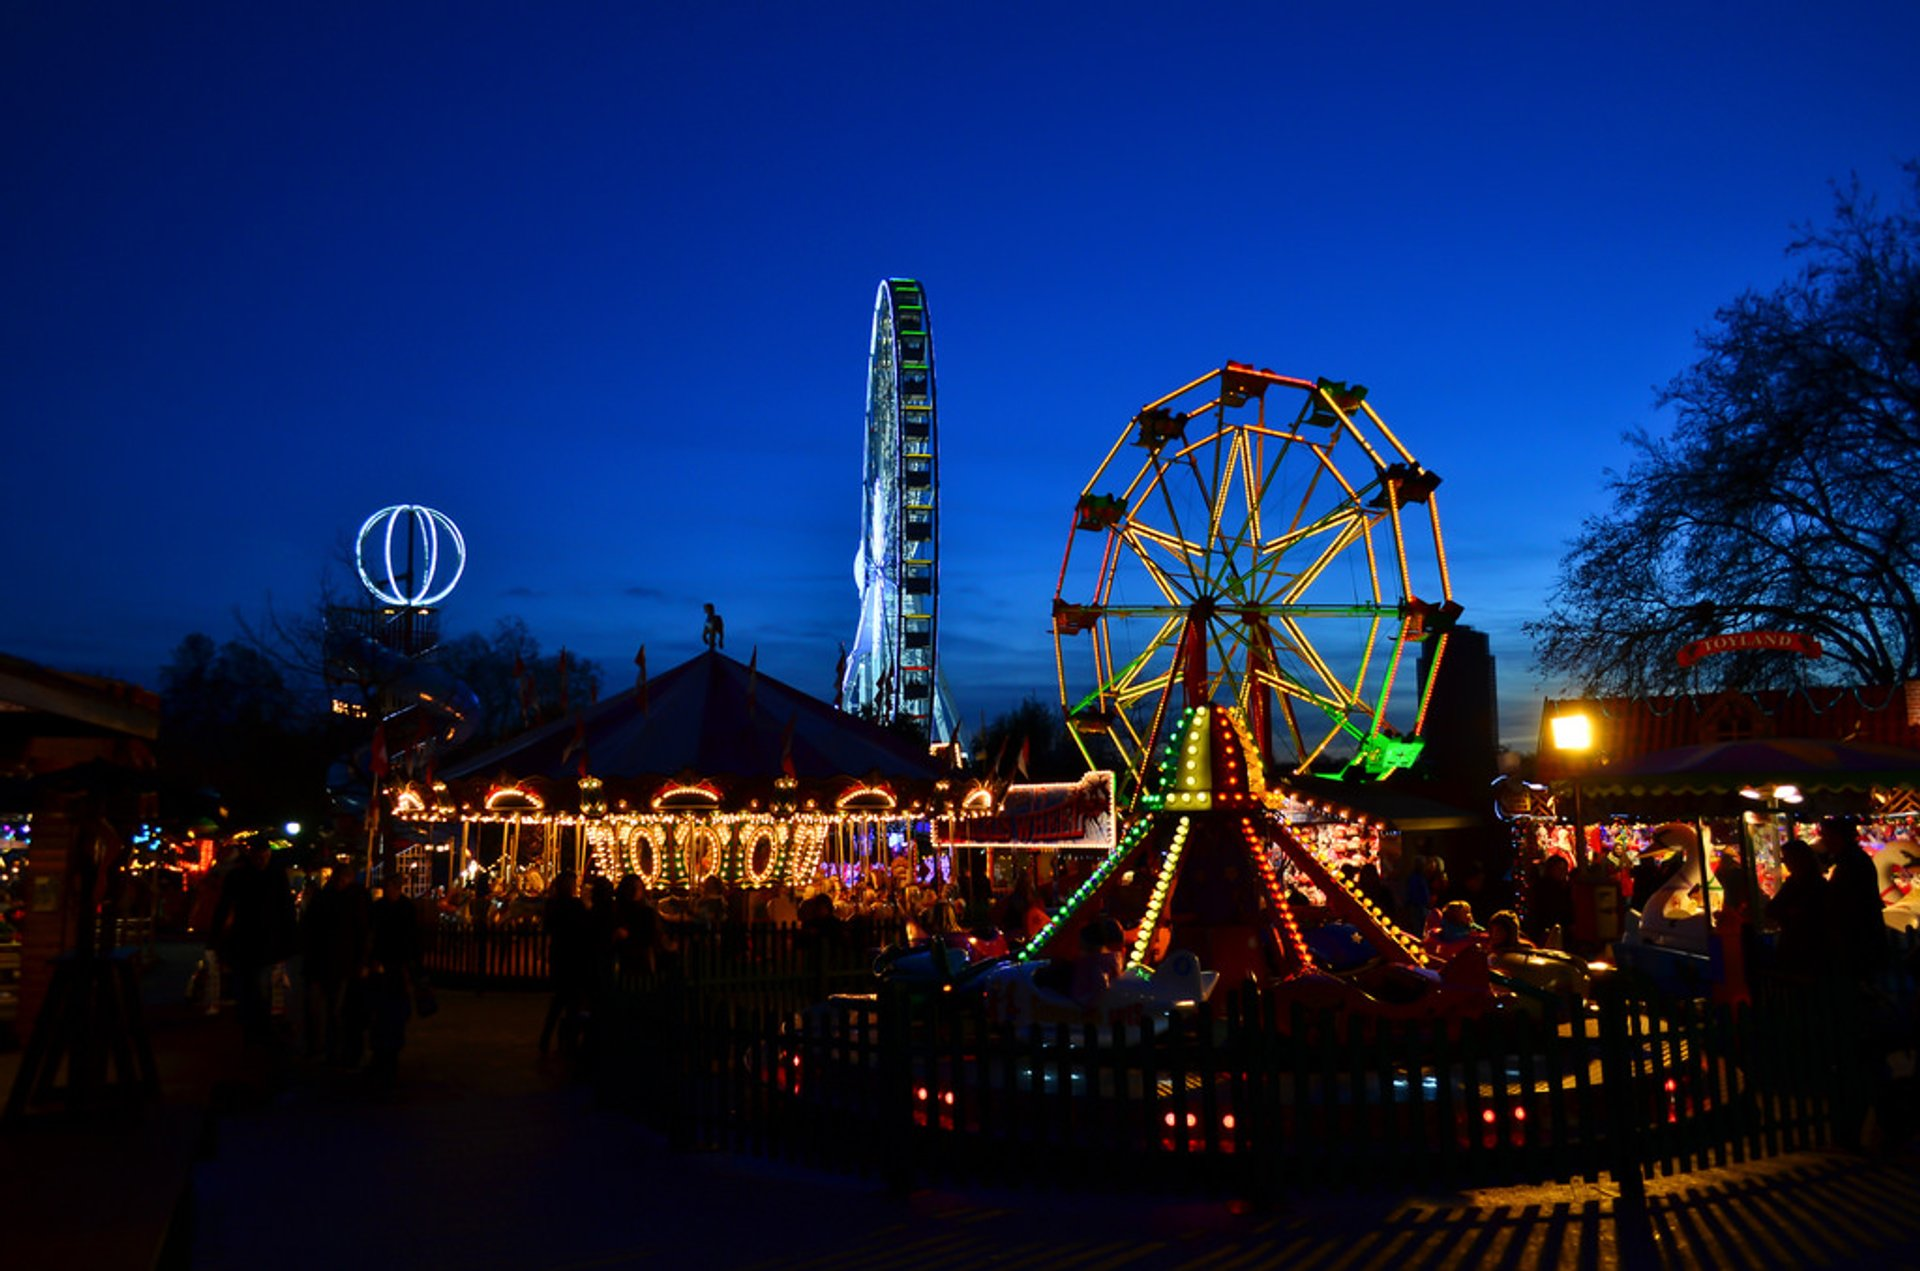 Hyde Park Winter Wonderland in London - Best Season 2020